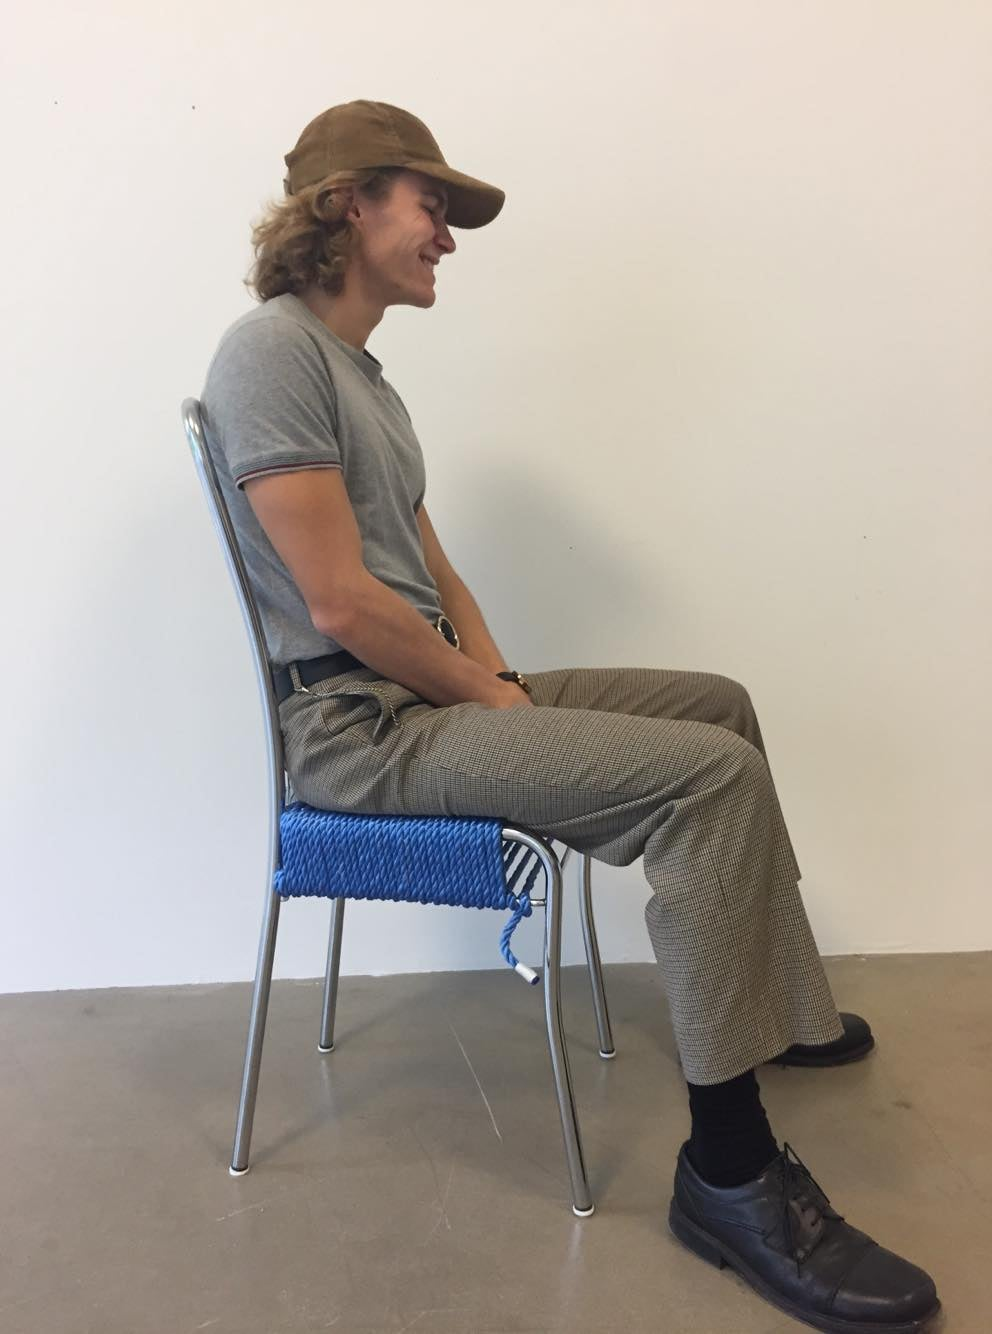 The Blue Rope Chair